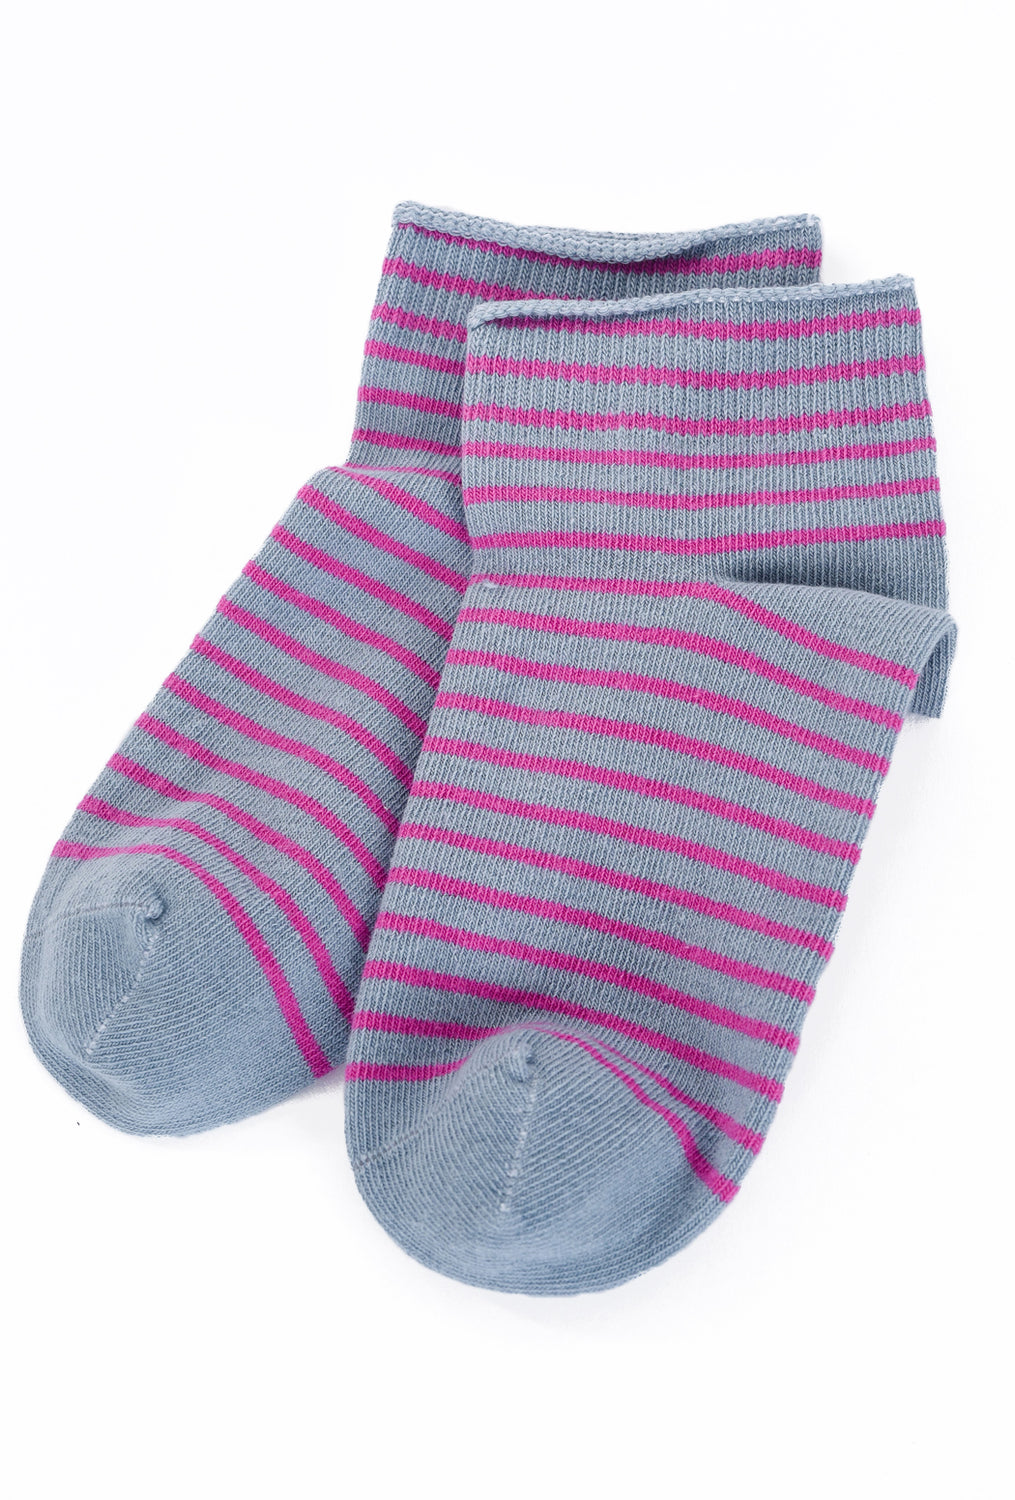 Little River Sock Mill Striped Bootie, Moon Gray/Orchid One Size Gray